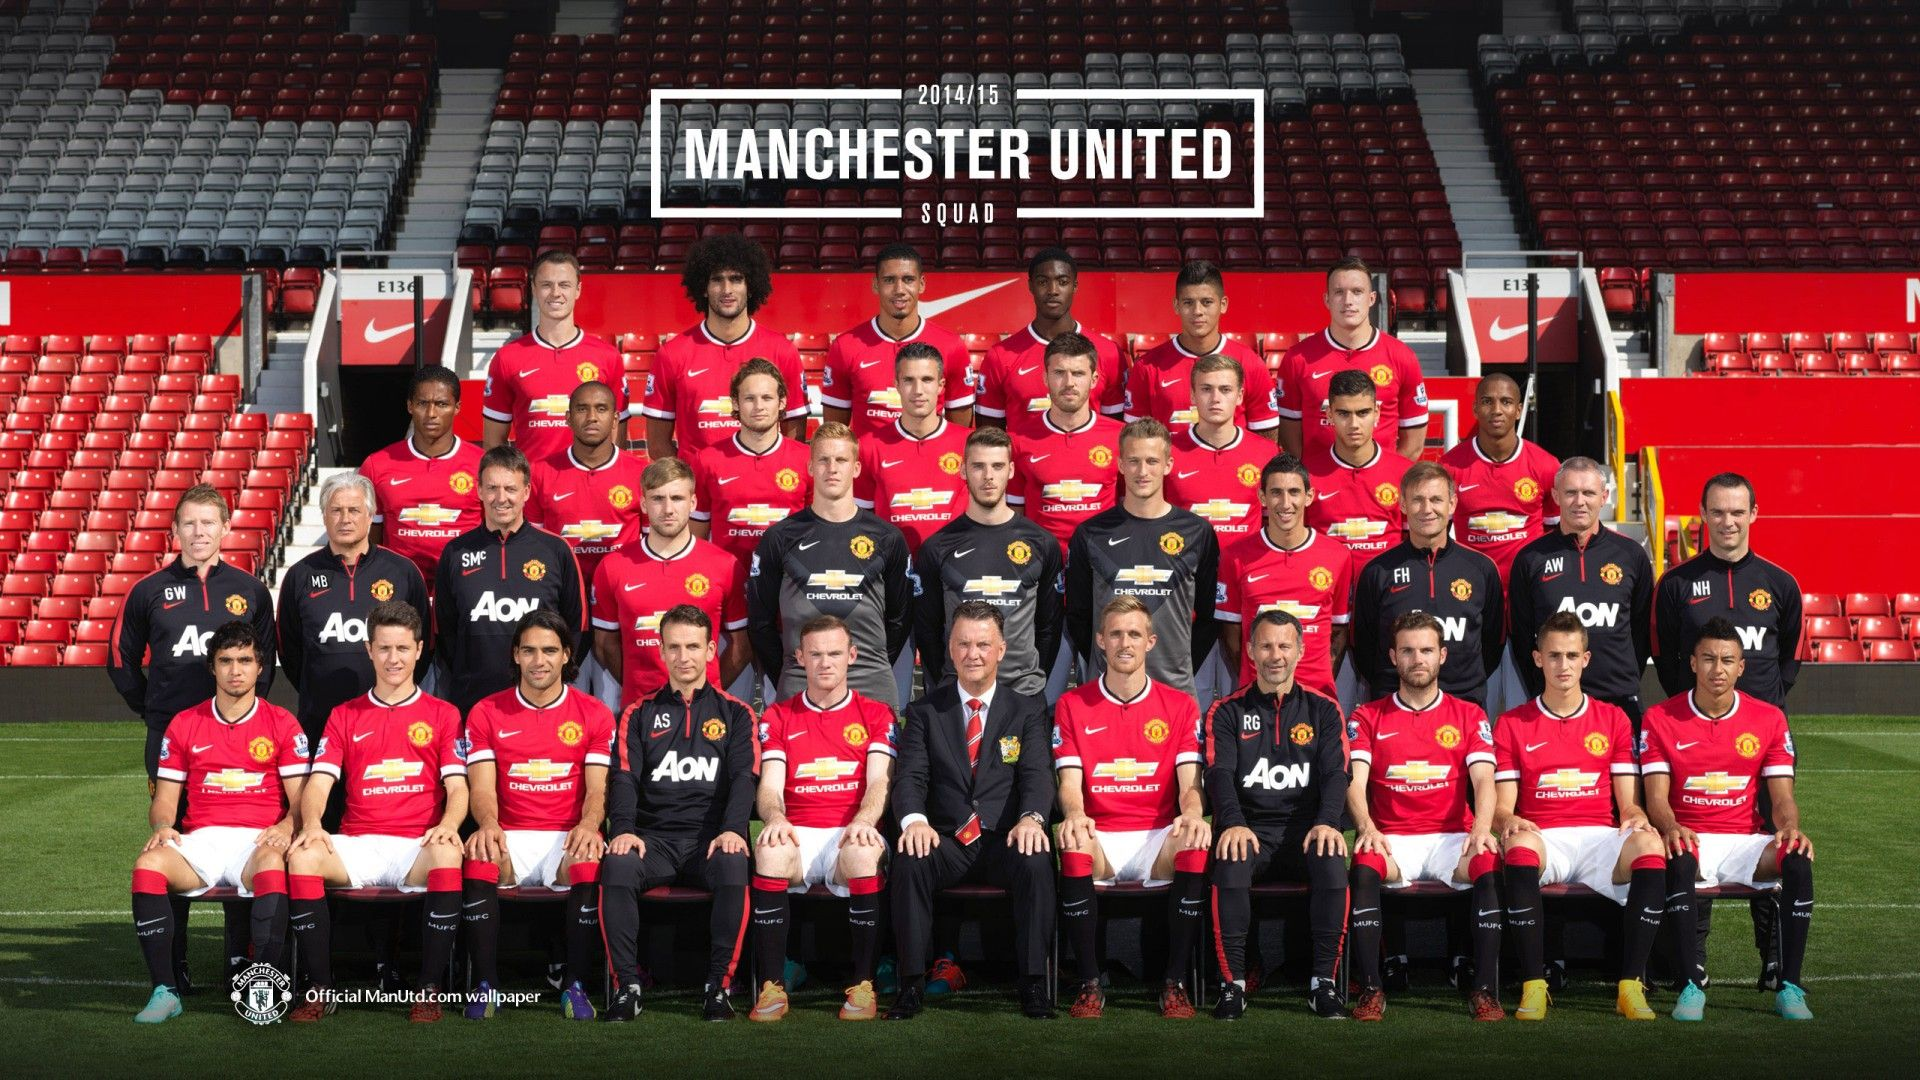 Manchester United Players 2014 2015 Wallpaper Hd Free